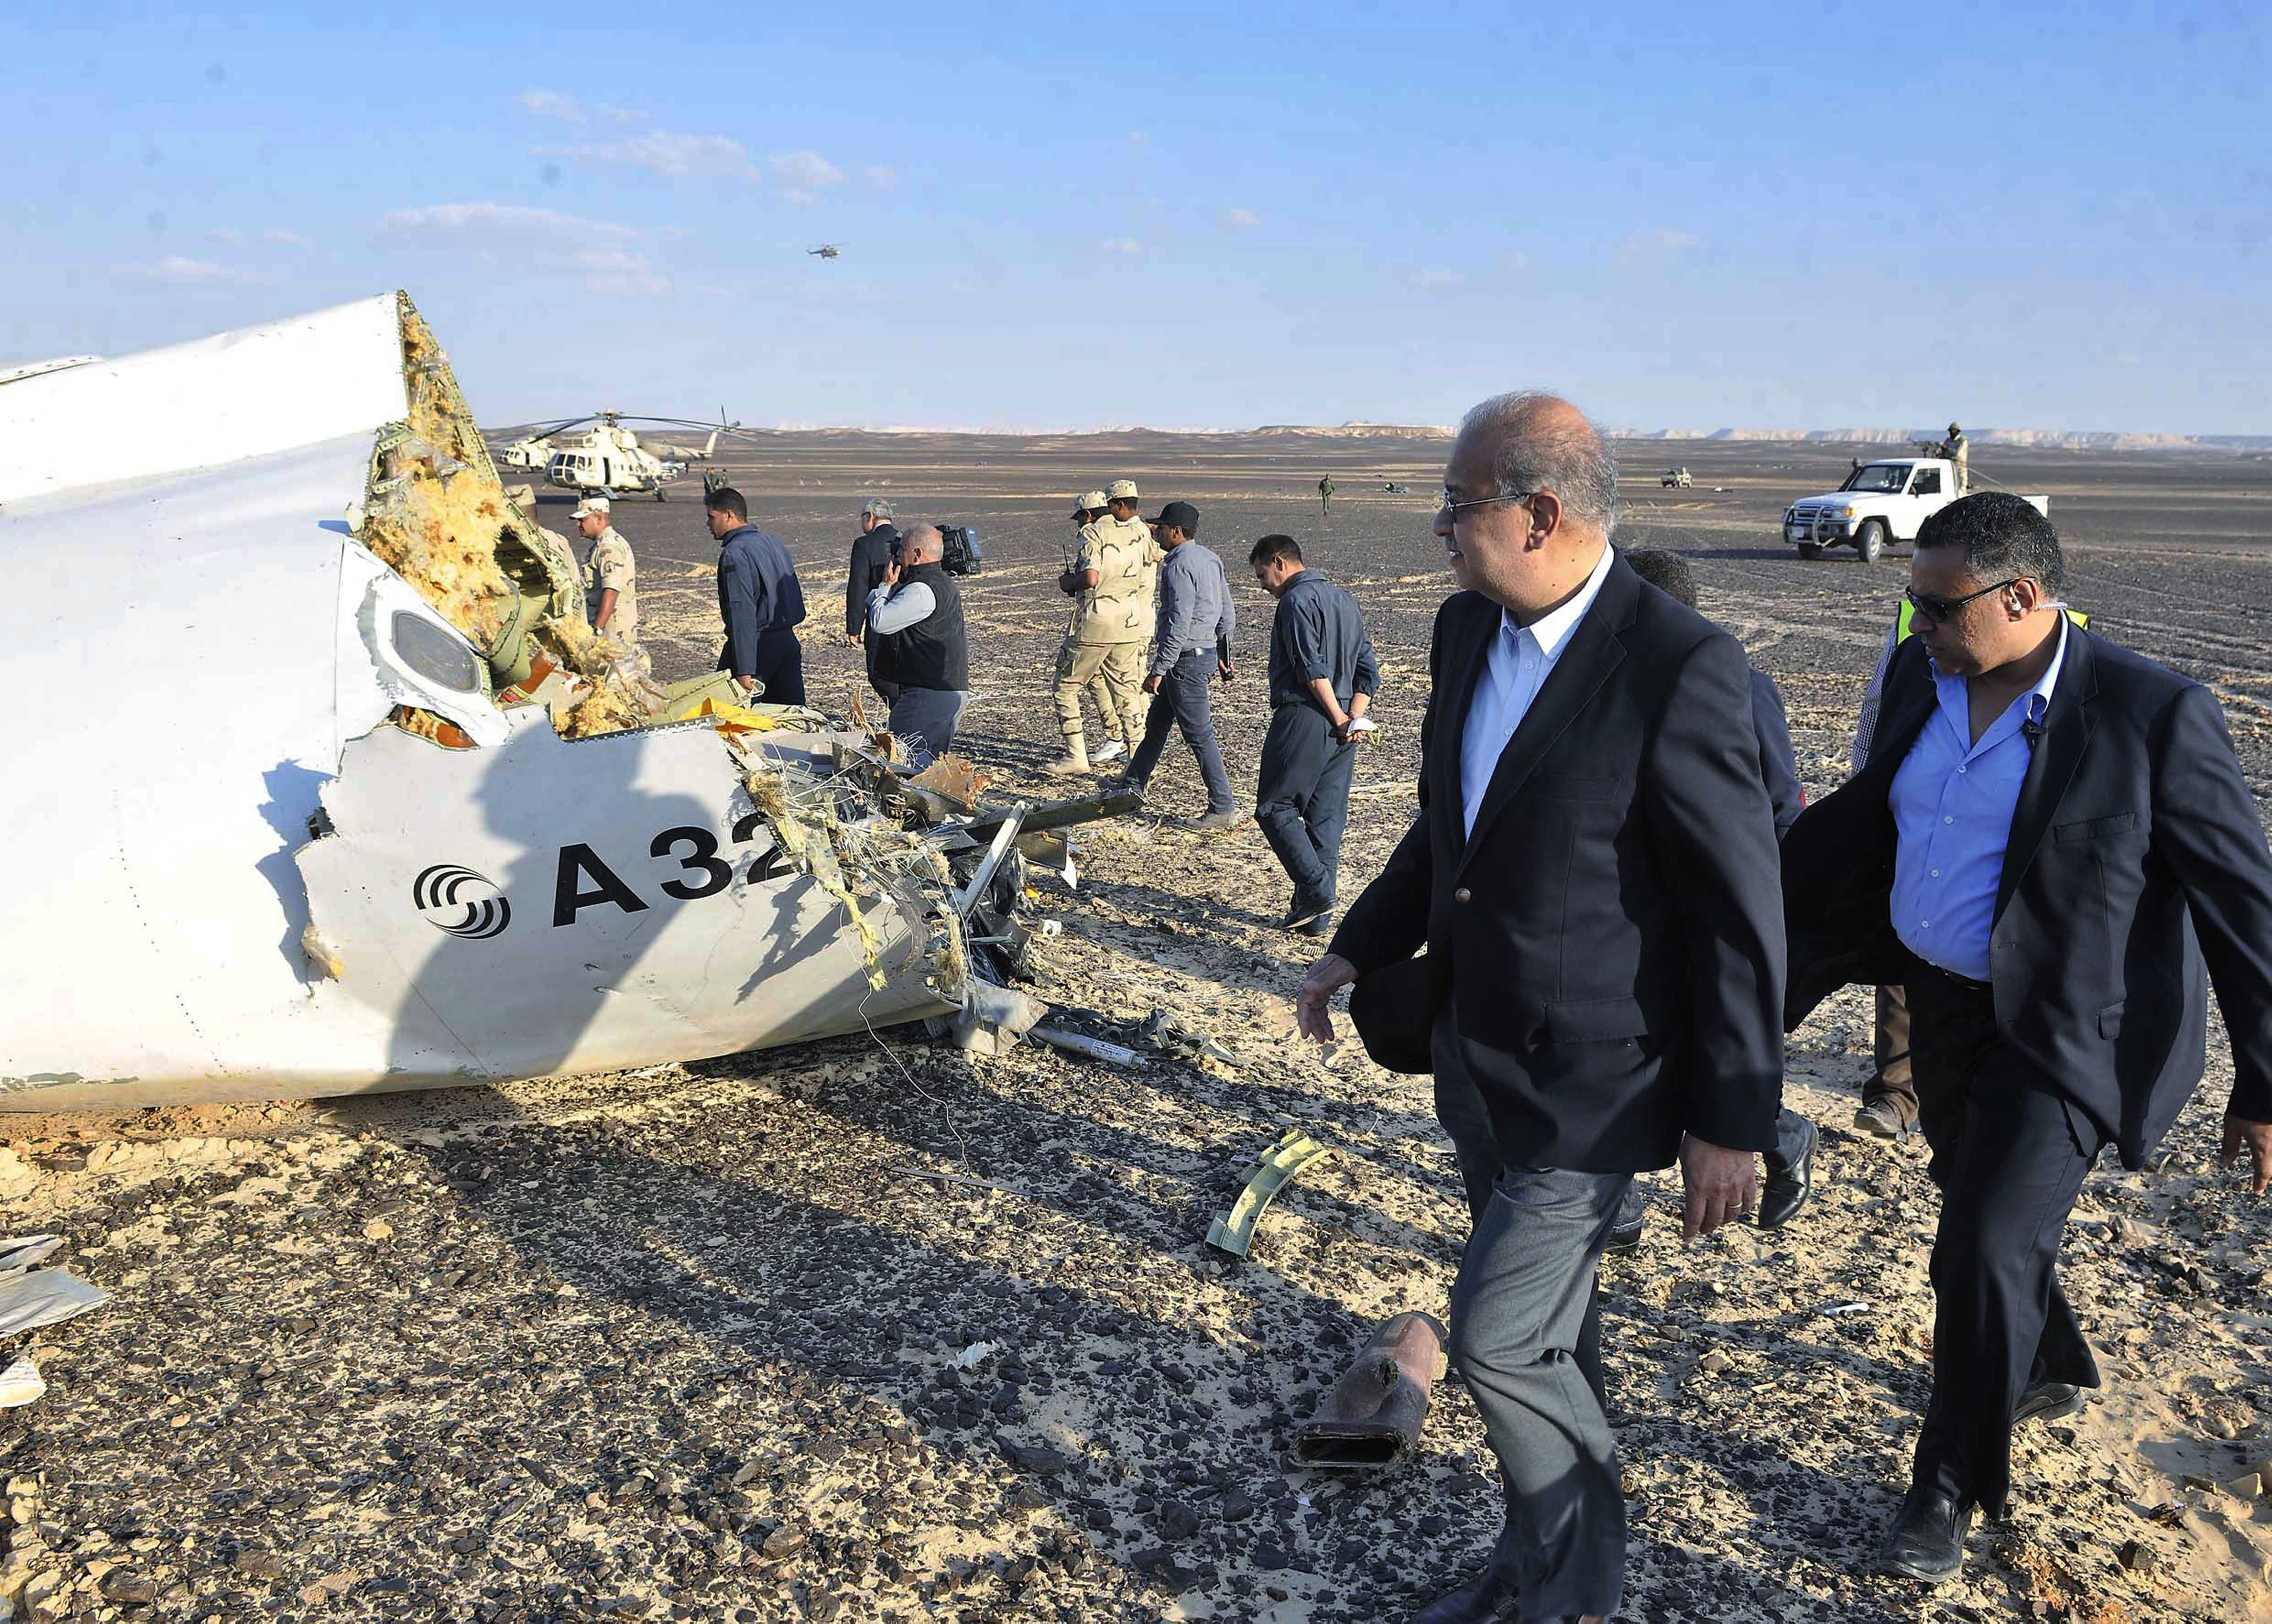 SIN09. Sinai (Egypt), .- The Egyptian Prime Minister, Sherif Ismail (2 - R), examines the wreckage at the site of the Russian plane crash, Sinai, Egypt, 31 October 2015. According to reports the Egyptian Government has dispatched more than 45 ambulances to the crash site of the Kogalymavia Metrojet Russian passenger jet, which disappeared from raider after requesting an emergency landing early 31 October, crashing in the mountainous al-Hasanah area of central Sinai. The black box has been recovered at the site. (Egipto) EFE/EPA/STR EGYPT OUT Authorities fear all on board crashed Russian jet dead